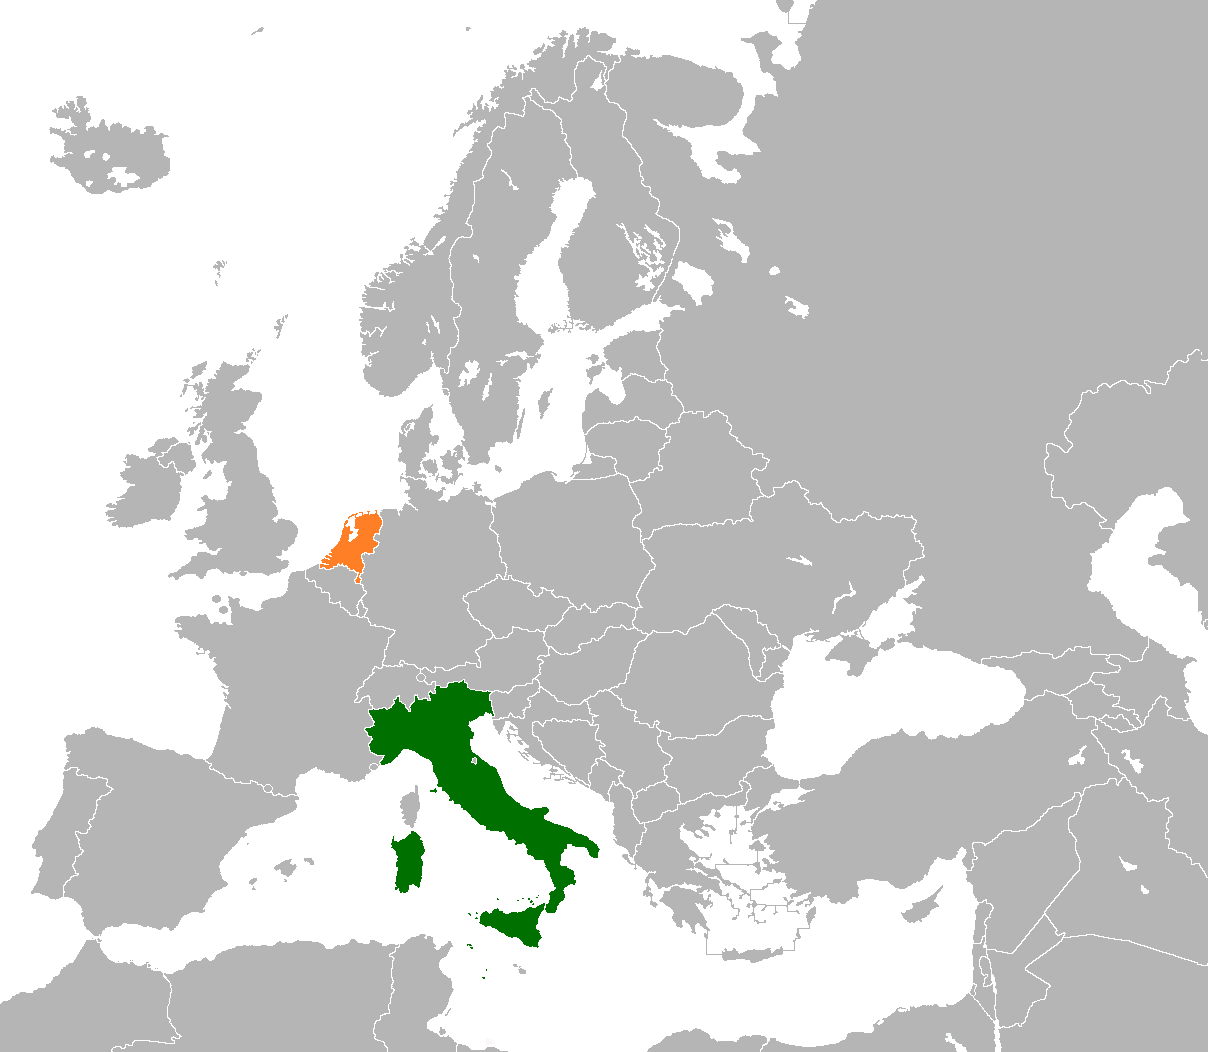 FileNetherlands Italy Locatorpng Wikimedia Commons